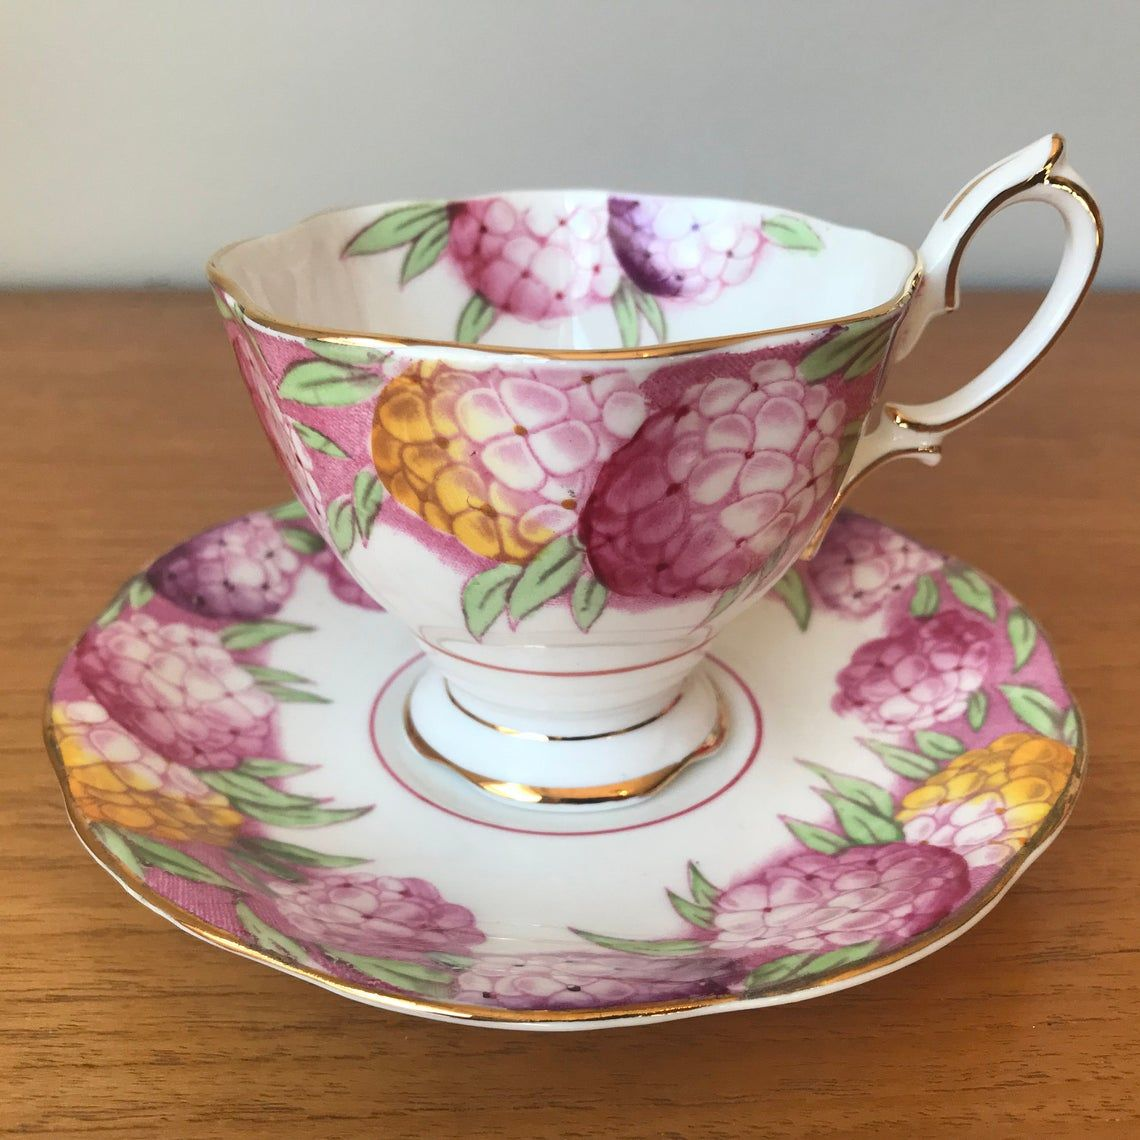 Royal Albert Candytuft Tea Cup and Saucer, Pink Purple and Yellow Flower Teacup and Saucer, English Bone China